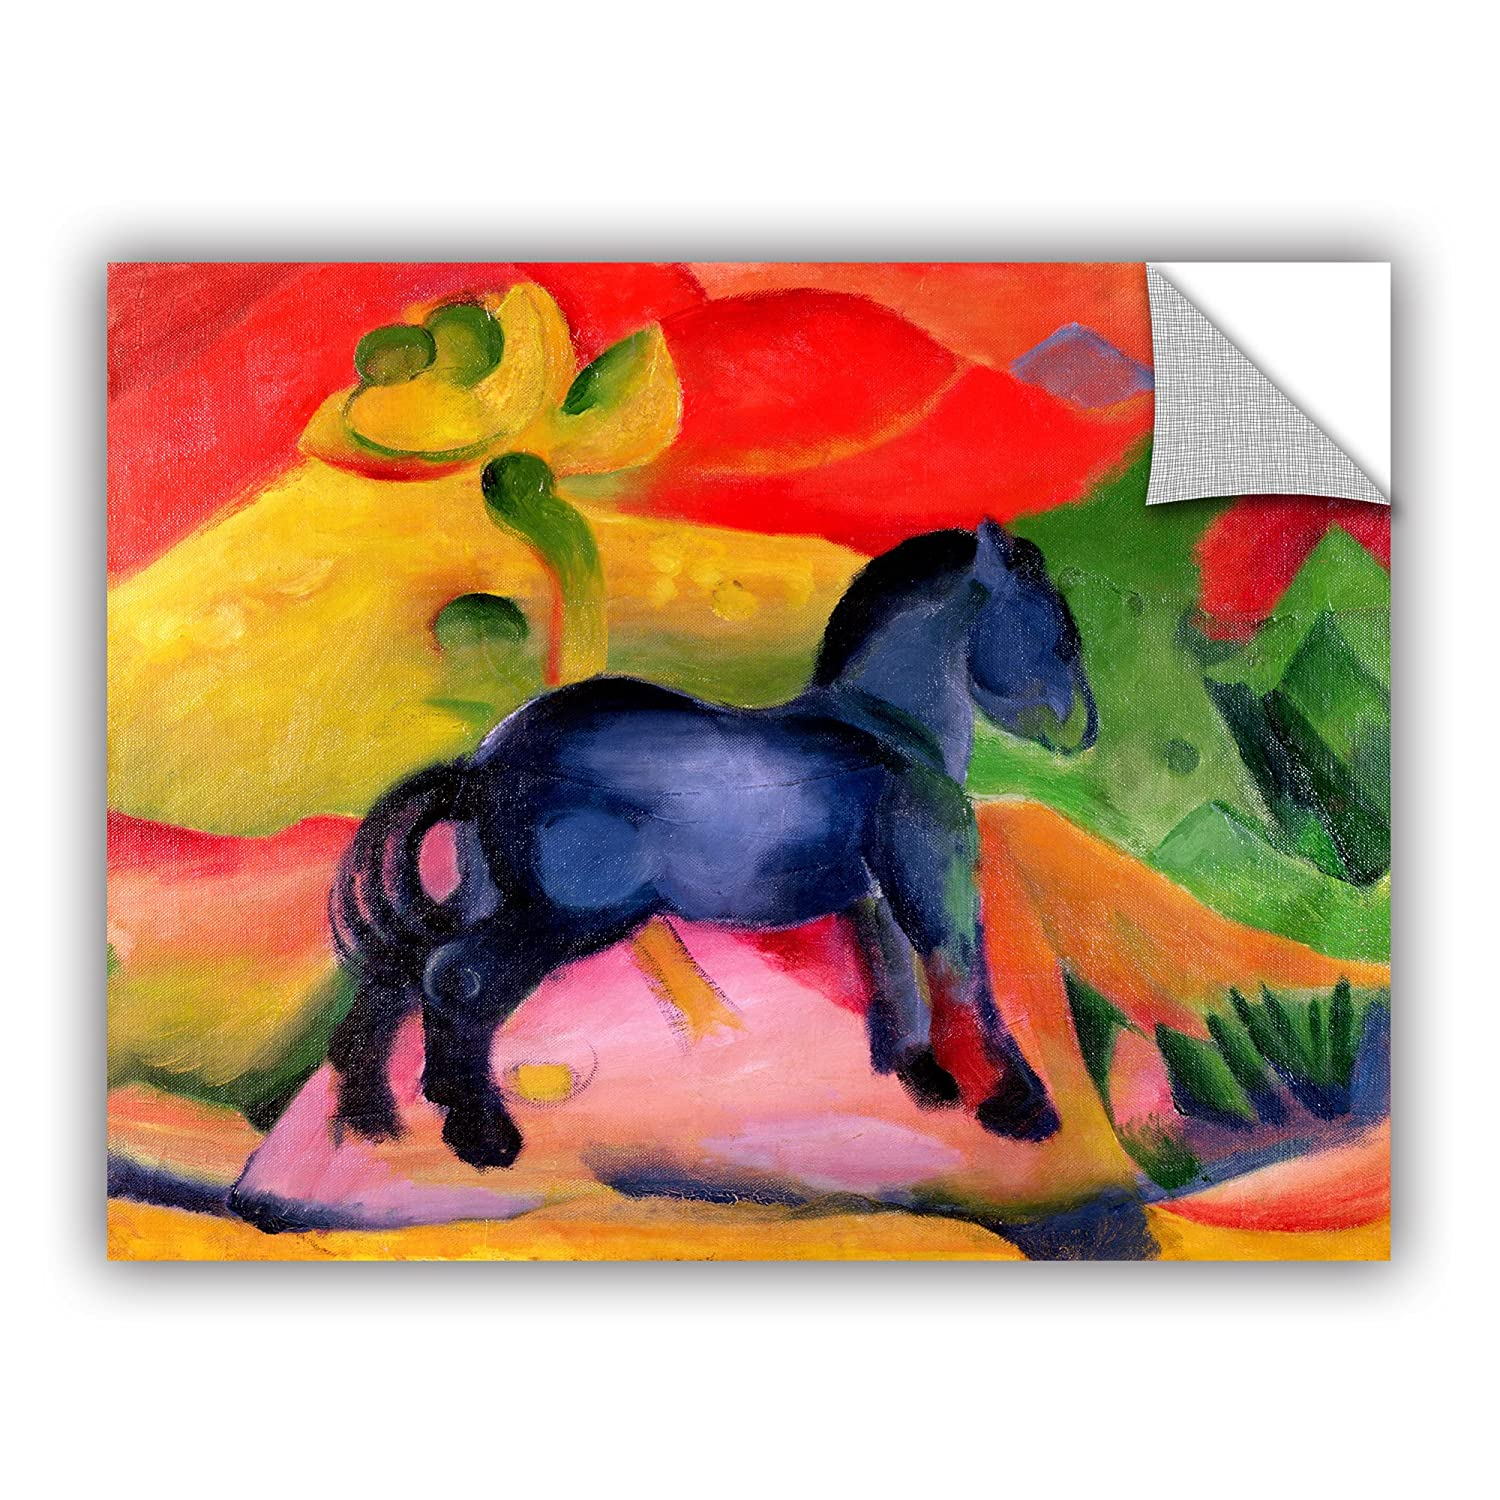 ArtWall Franz Marcs The Birth of The Horse Art Appeelz Removable Wall Art Graphic 24 x 32